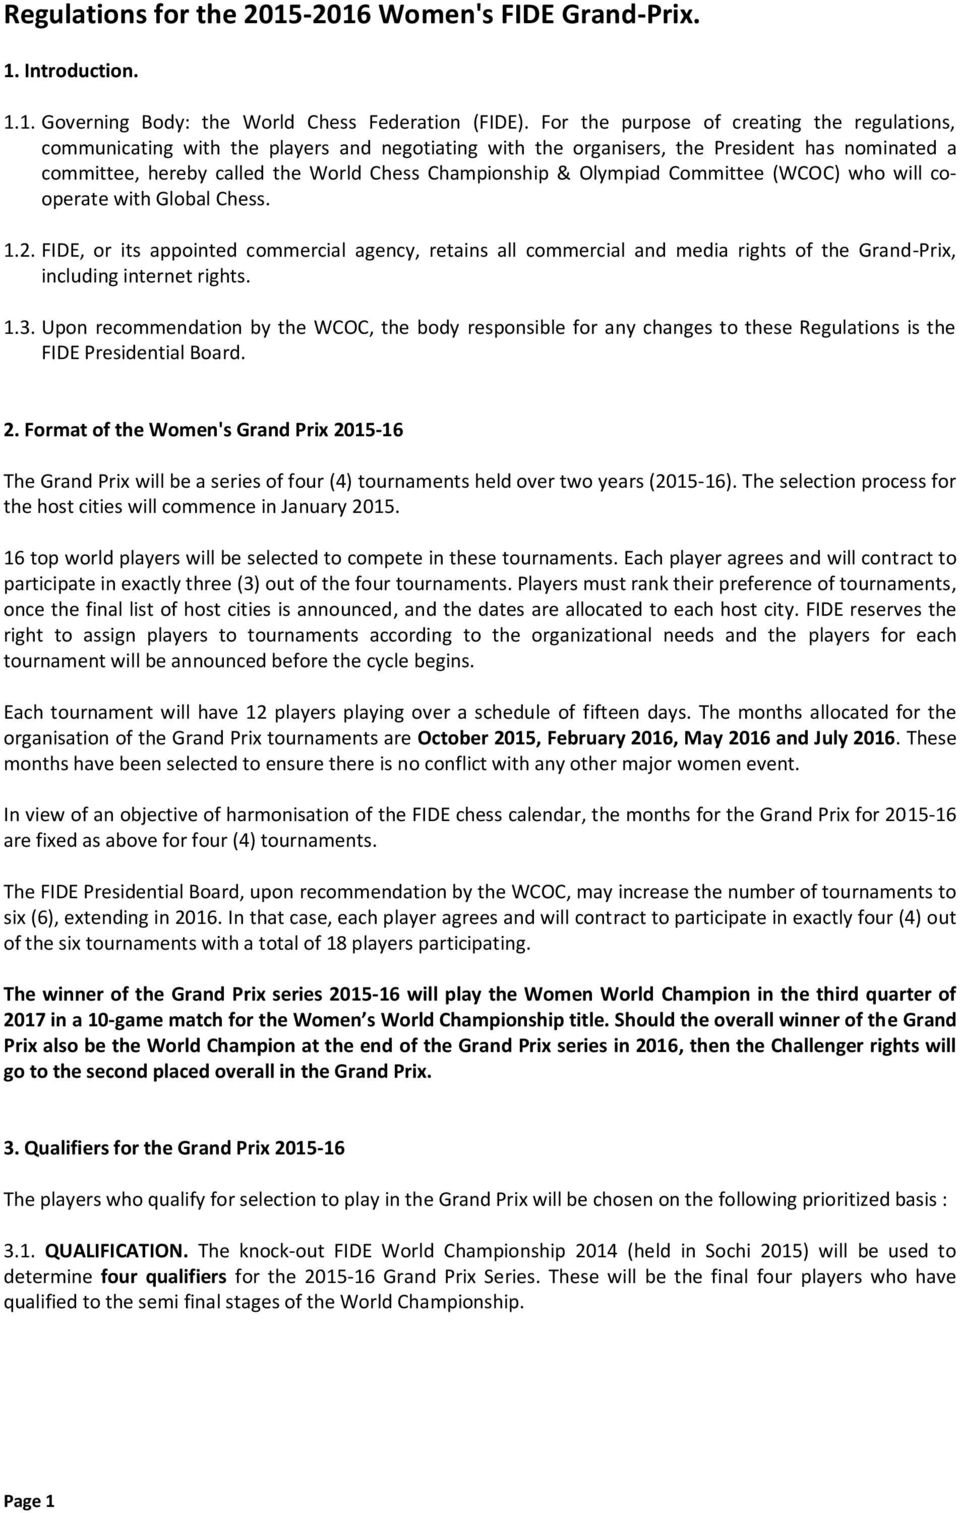 Olympiad Committee (WCOC) who will cooperate with Global Chess. 1.2. FIDE, or its appointed commercial agency, retains all commercial and media rights of the Grand-Prix, including internet rights. 1.3.